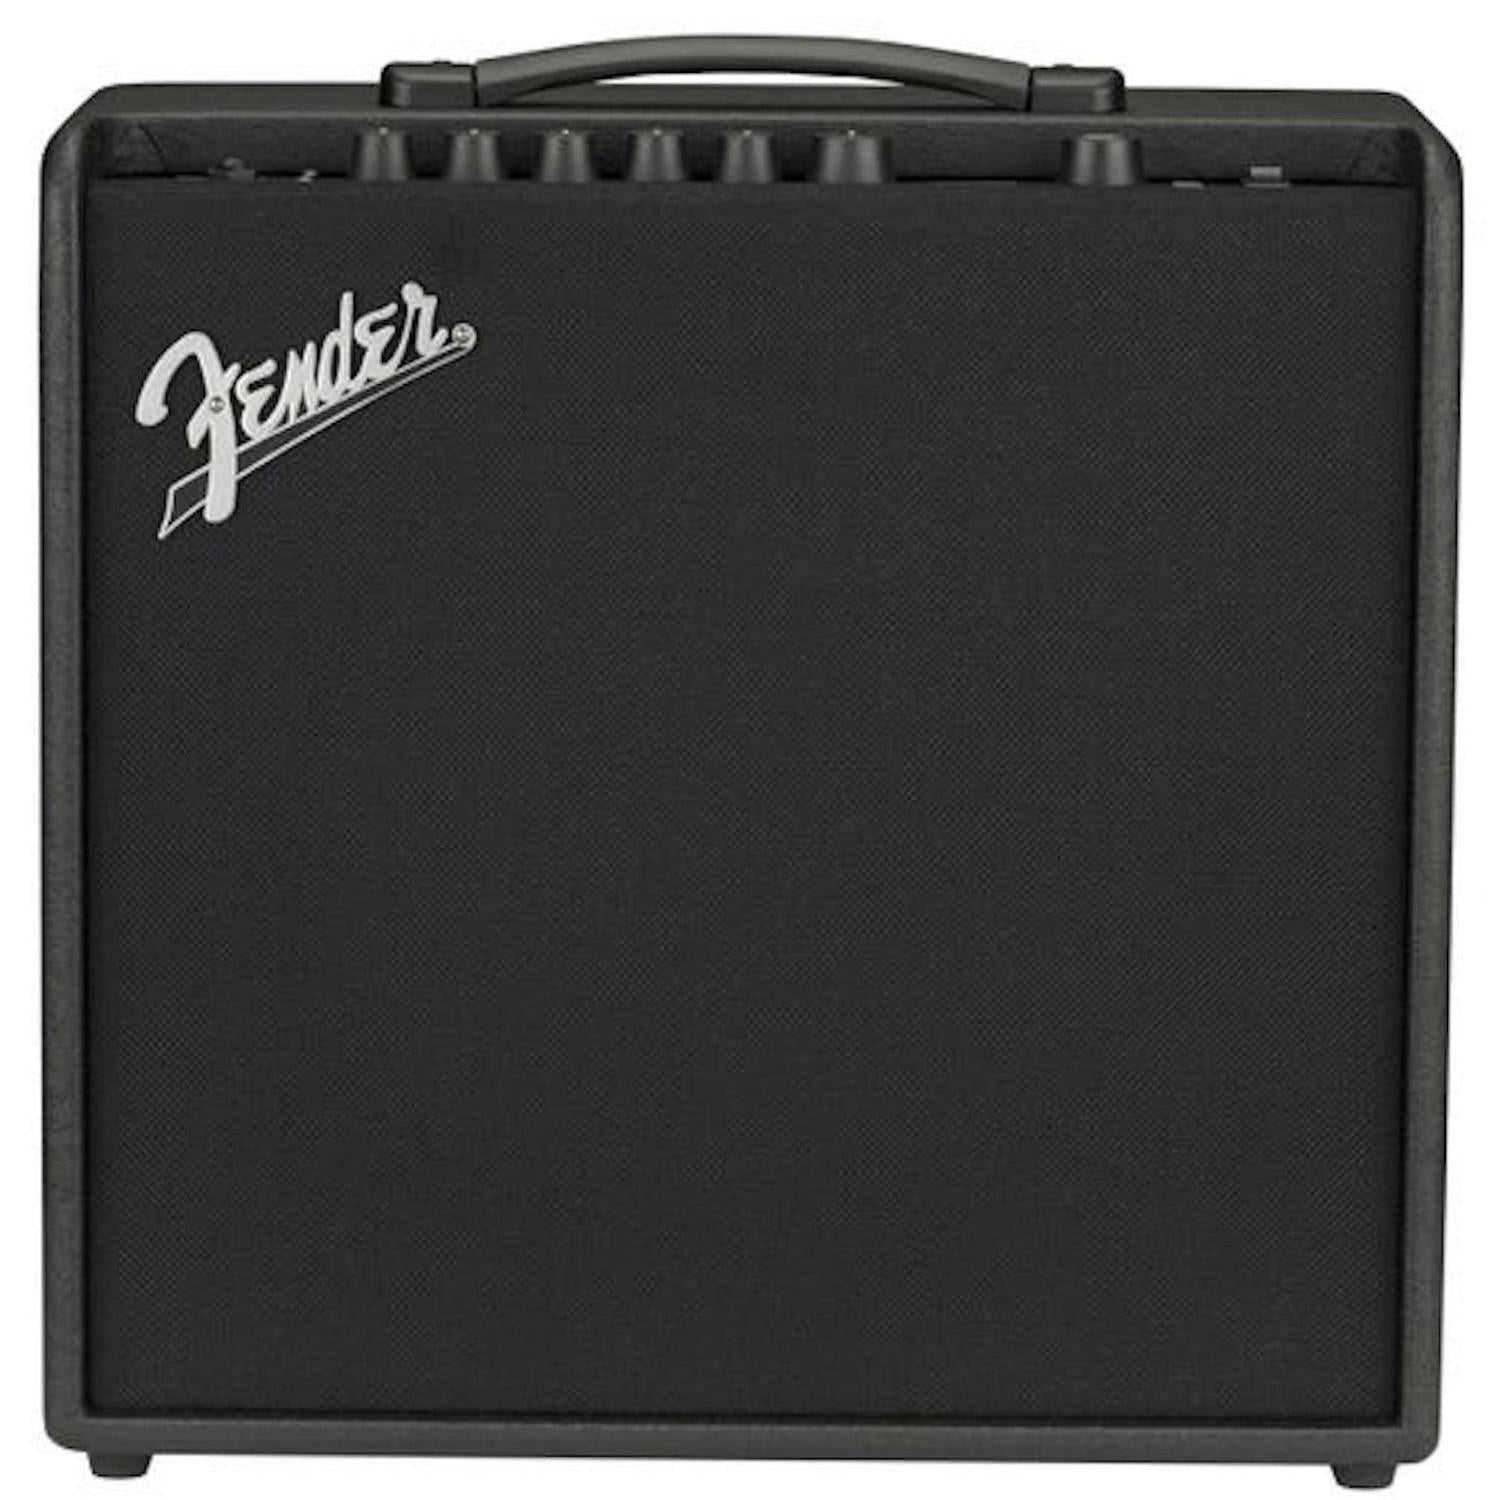 Fender Mustang™ LT50 Guitar Amplifier 50w